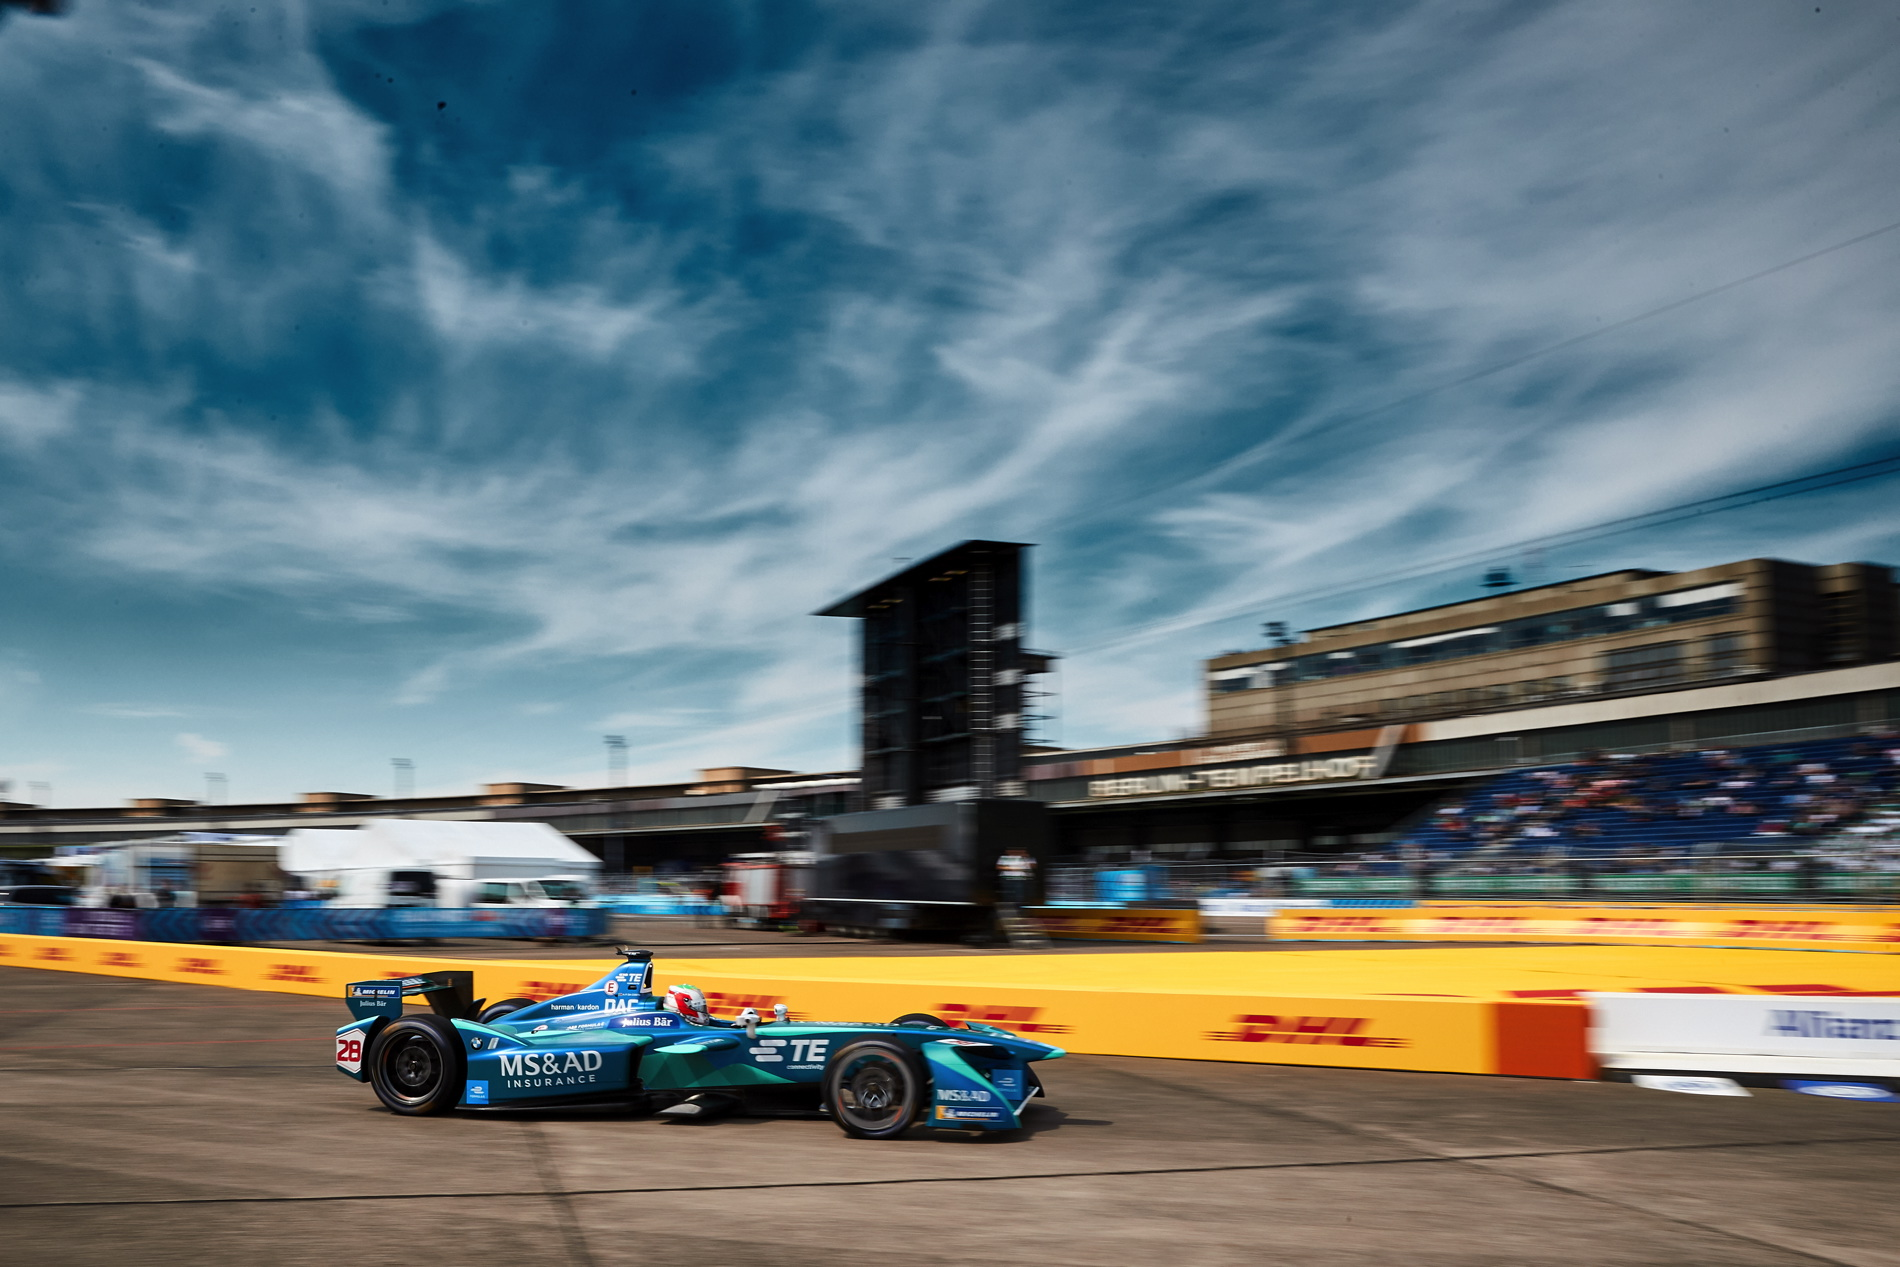 Ms Amp Ad Andretti Formula E Drivers Missed Out On A Points